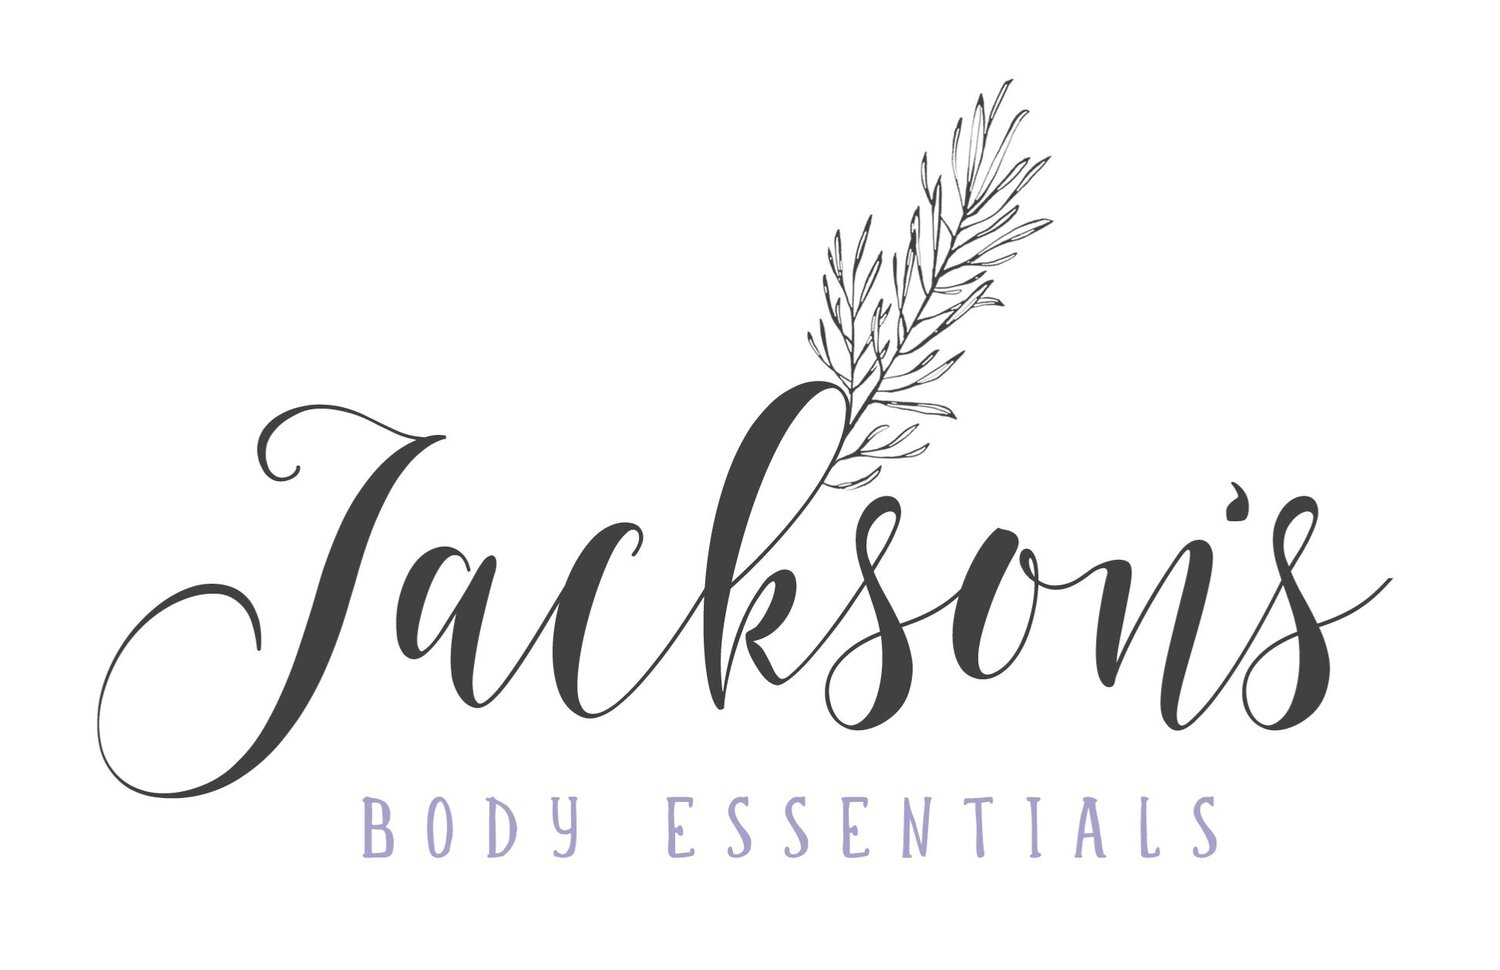 Jackson's Body Essentials Ltd